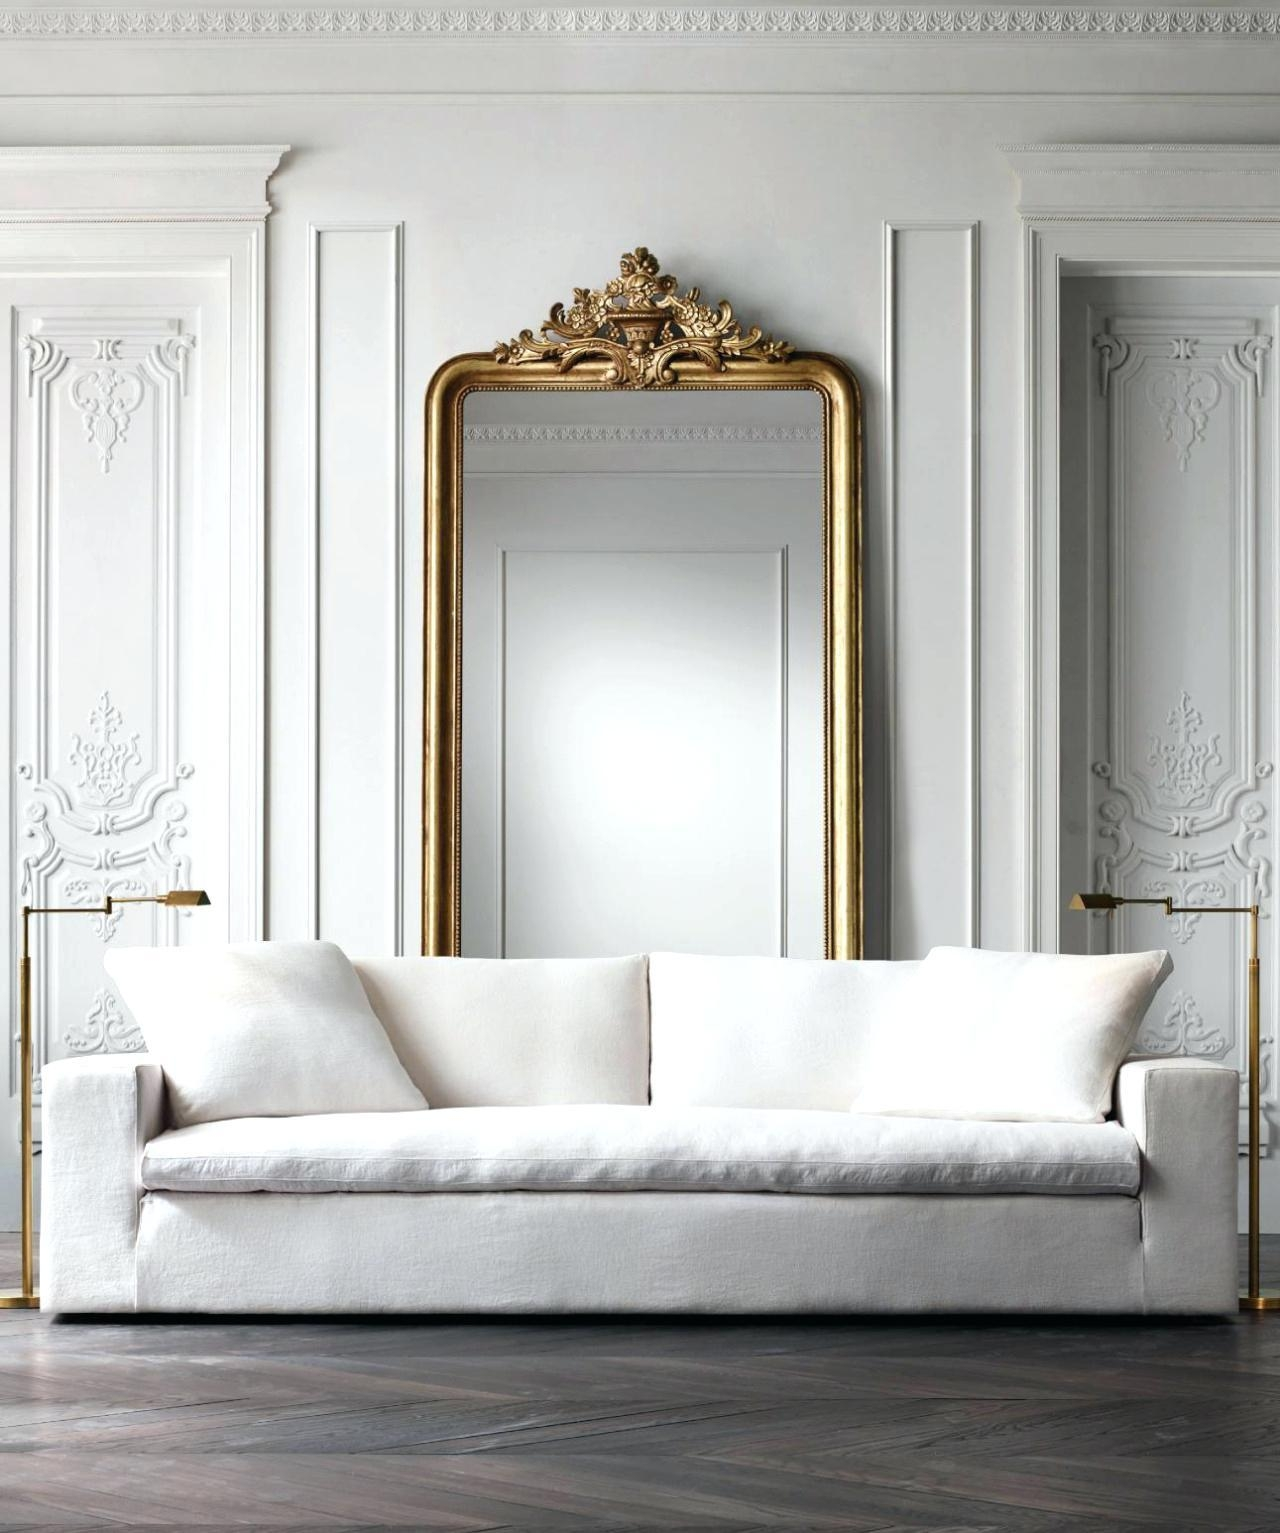 Wall Ideas : Giorgio Sunrise Bedroom Wall Mirror 360 Bedroom Wall In Decorative Wall Mirrors For Bedroom (View 14 of 20)